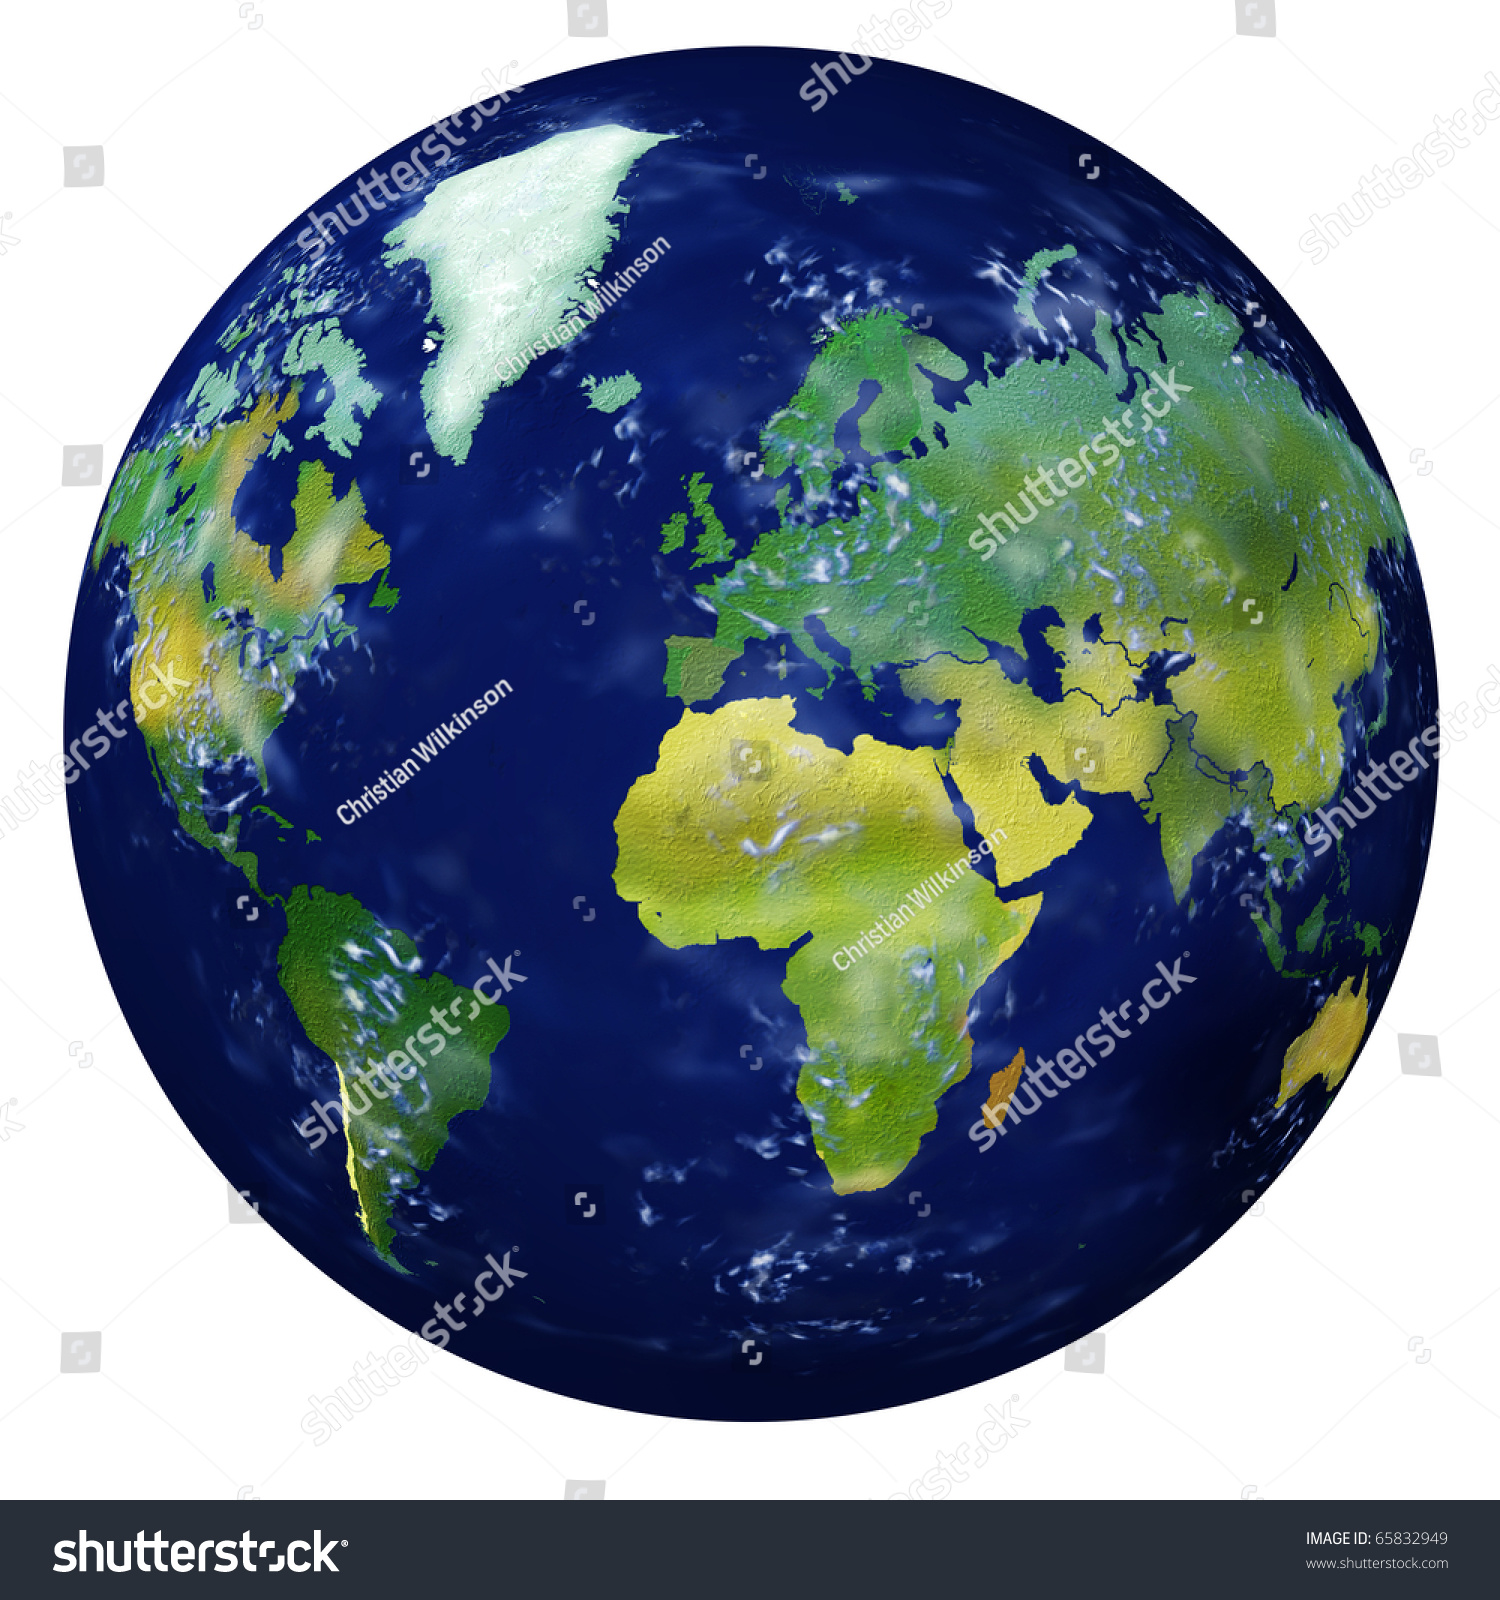 Planet Earth Highly Detailed Realistic Illustration Stock